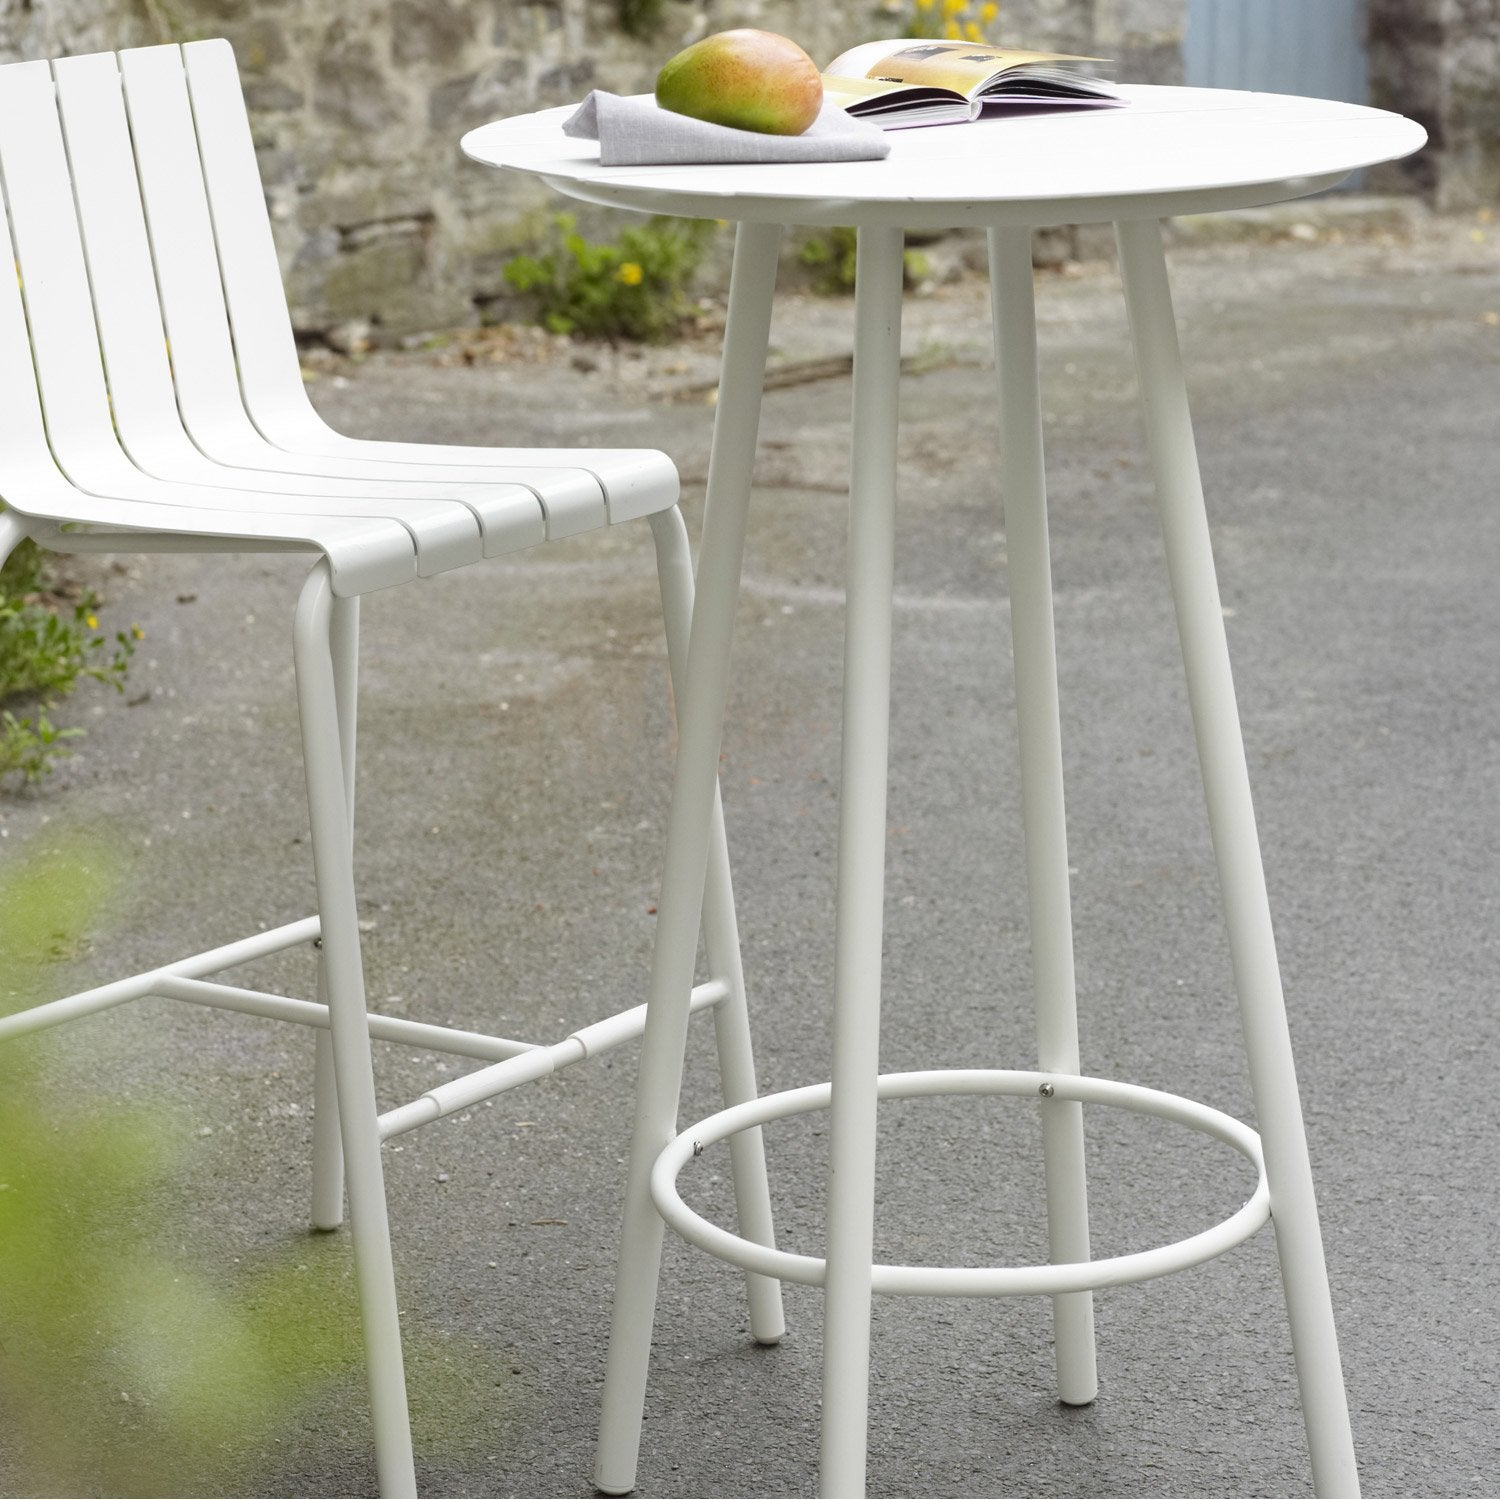 Table de jardin en aluminium exploration blanc naterial leroy merlin - Table de jardin aluminium leroy merlin ...